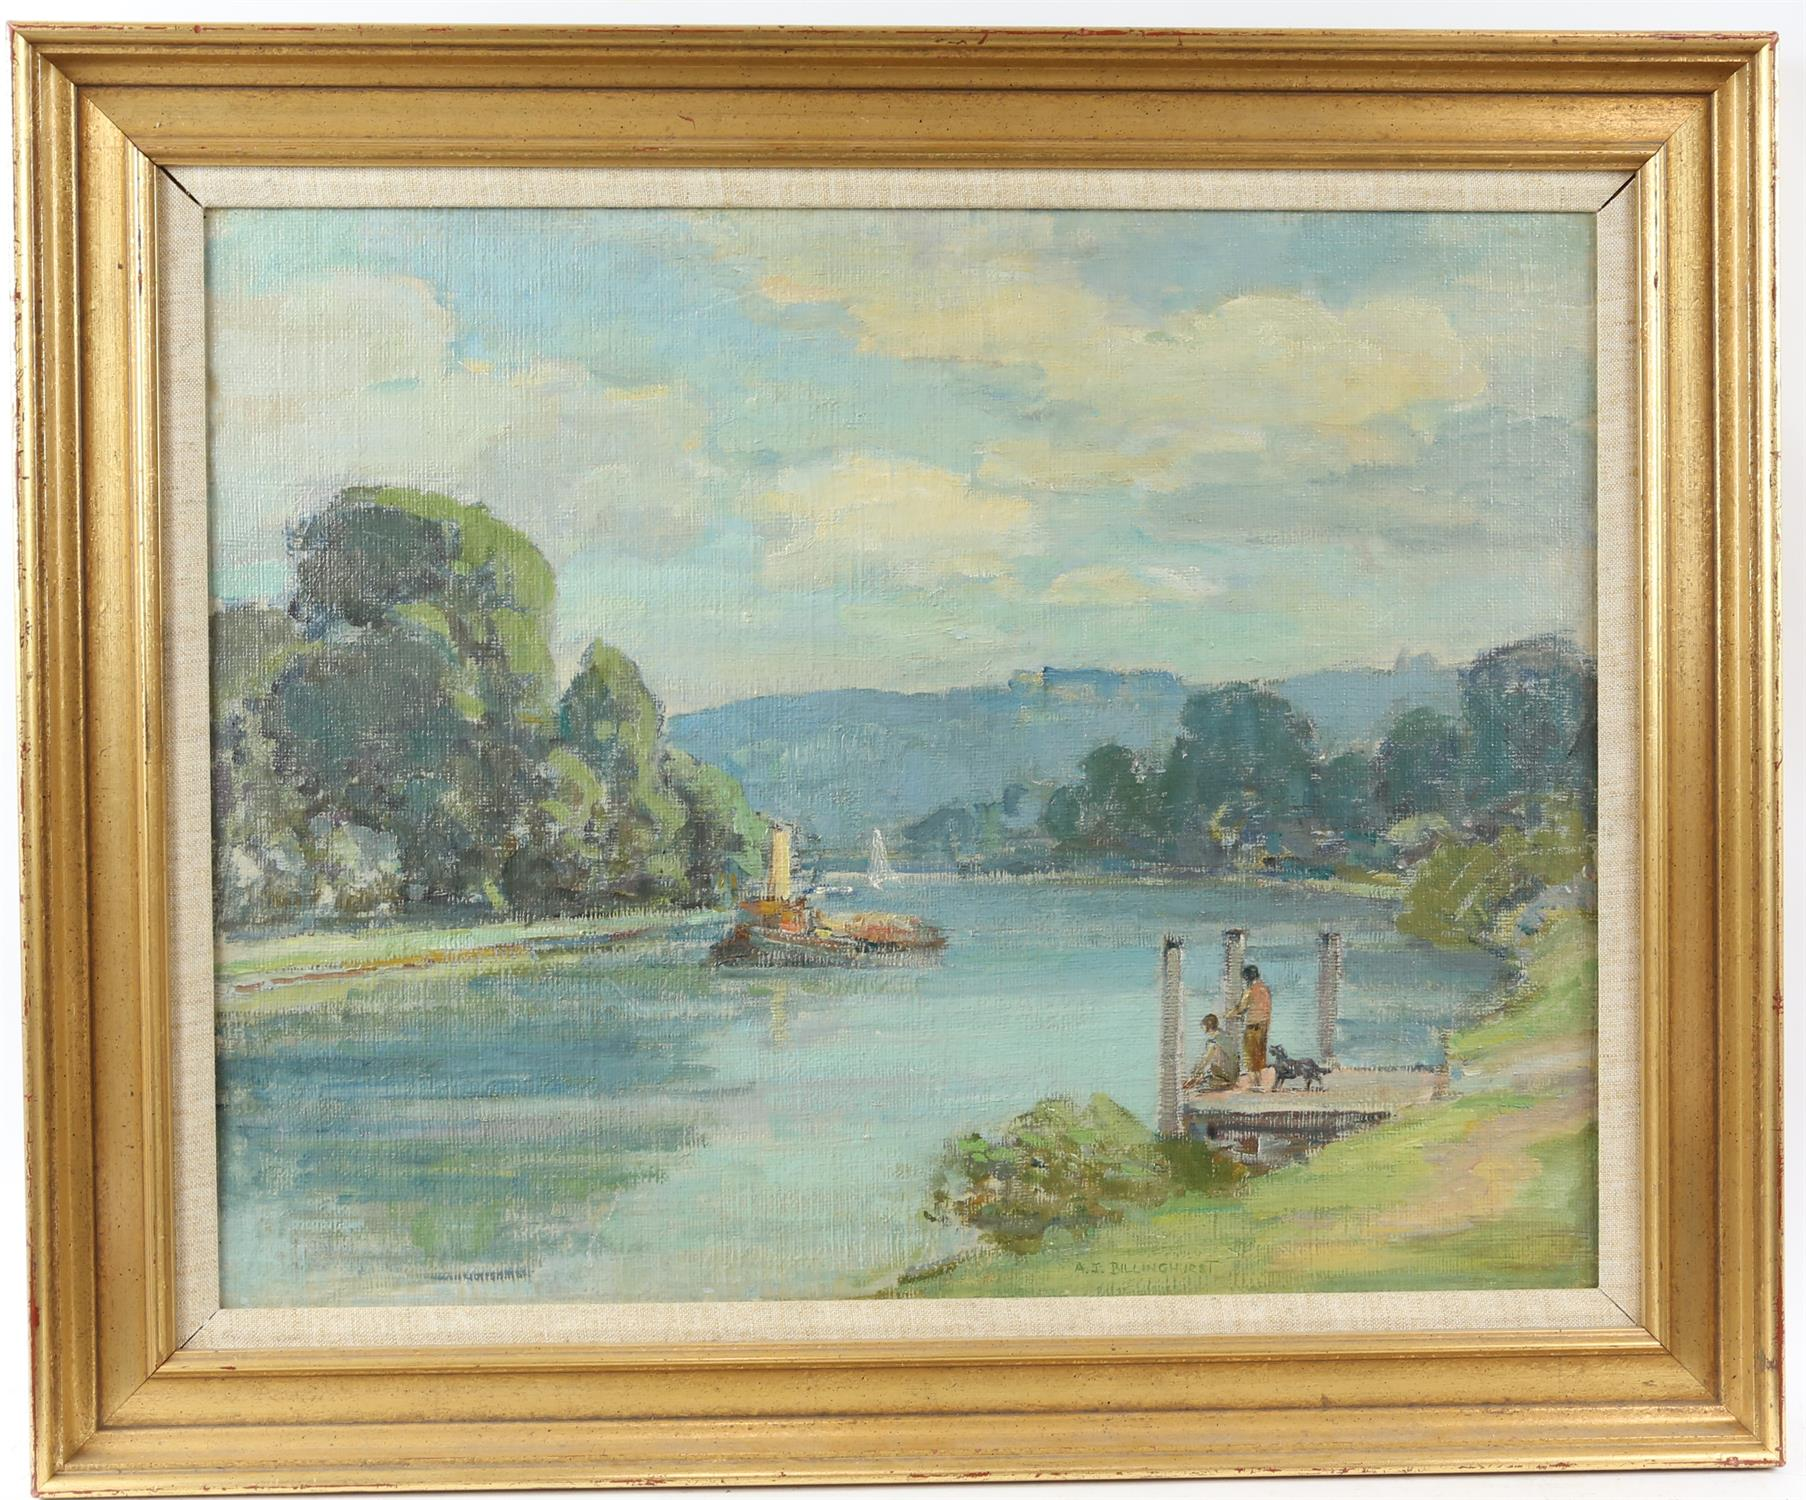 A J Billinghurst (British 1880-1963), river scene with steam barge and figures on a pontoon with a - Image 2 of 3